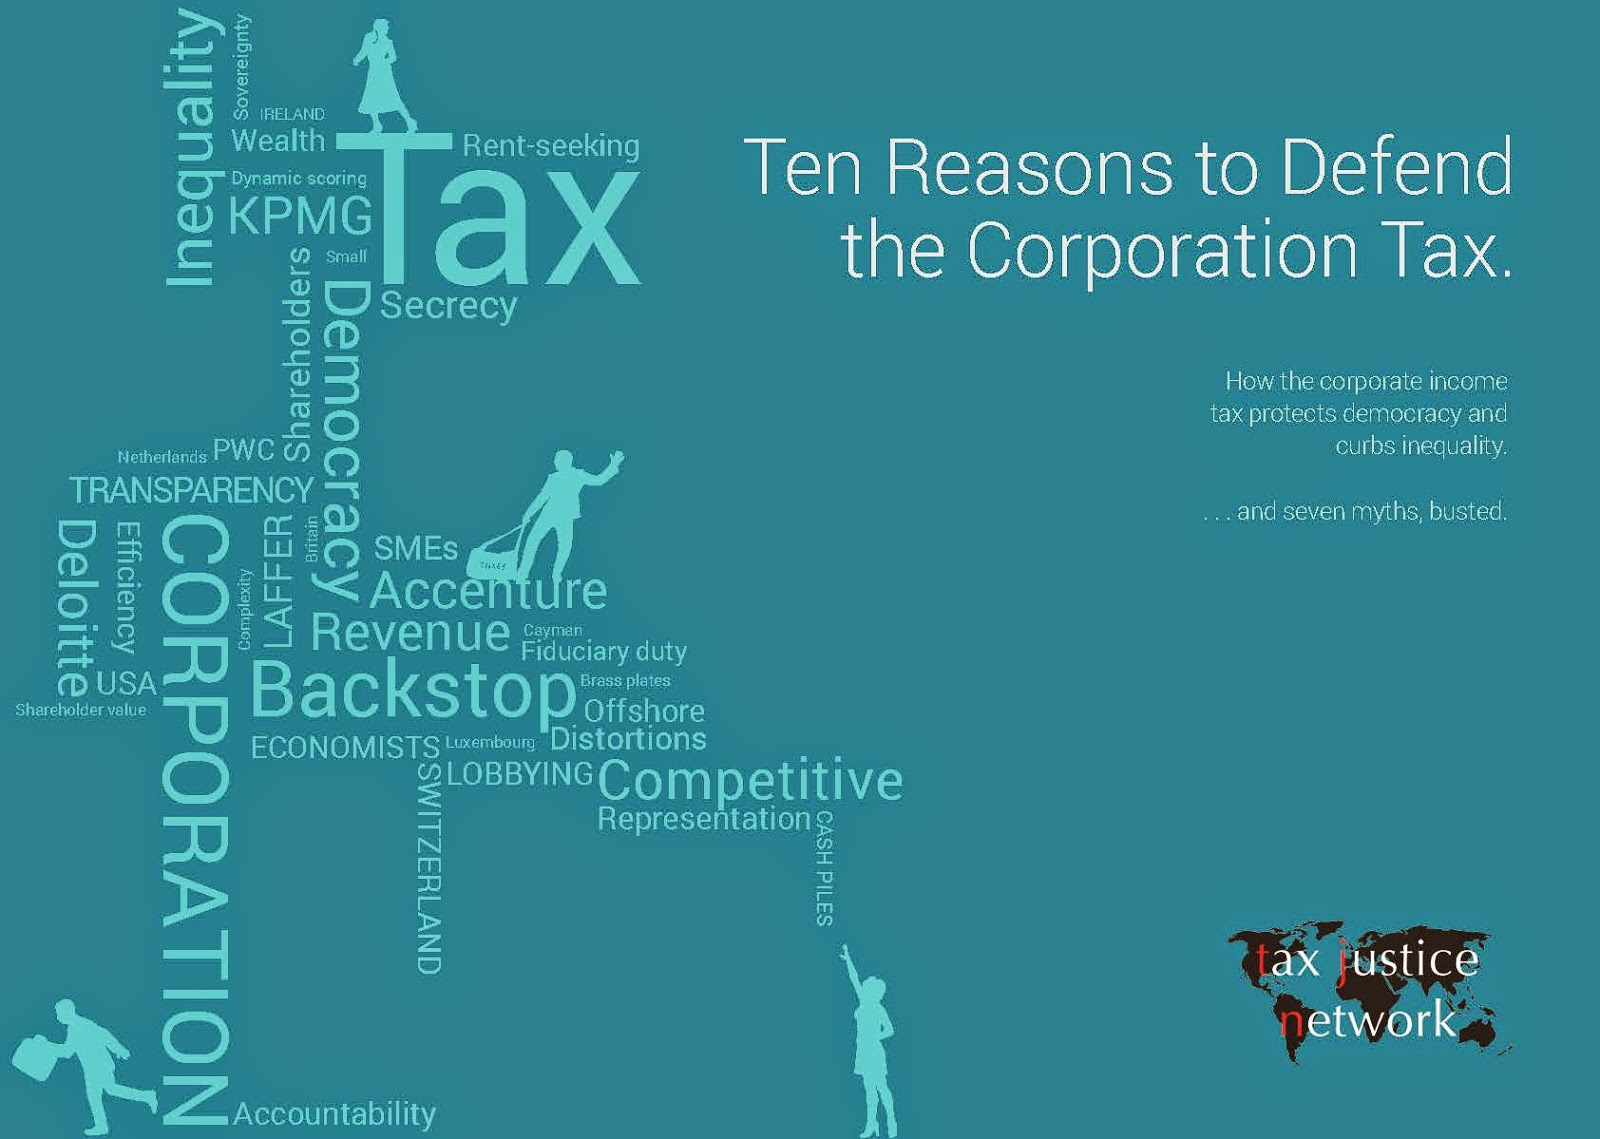 http://www.taxjustice.net/2015/03/18/new-report-ten-reasons-to-defend-the-corporate-income-tax/